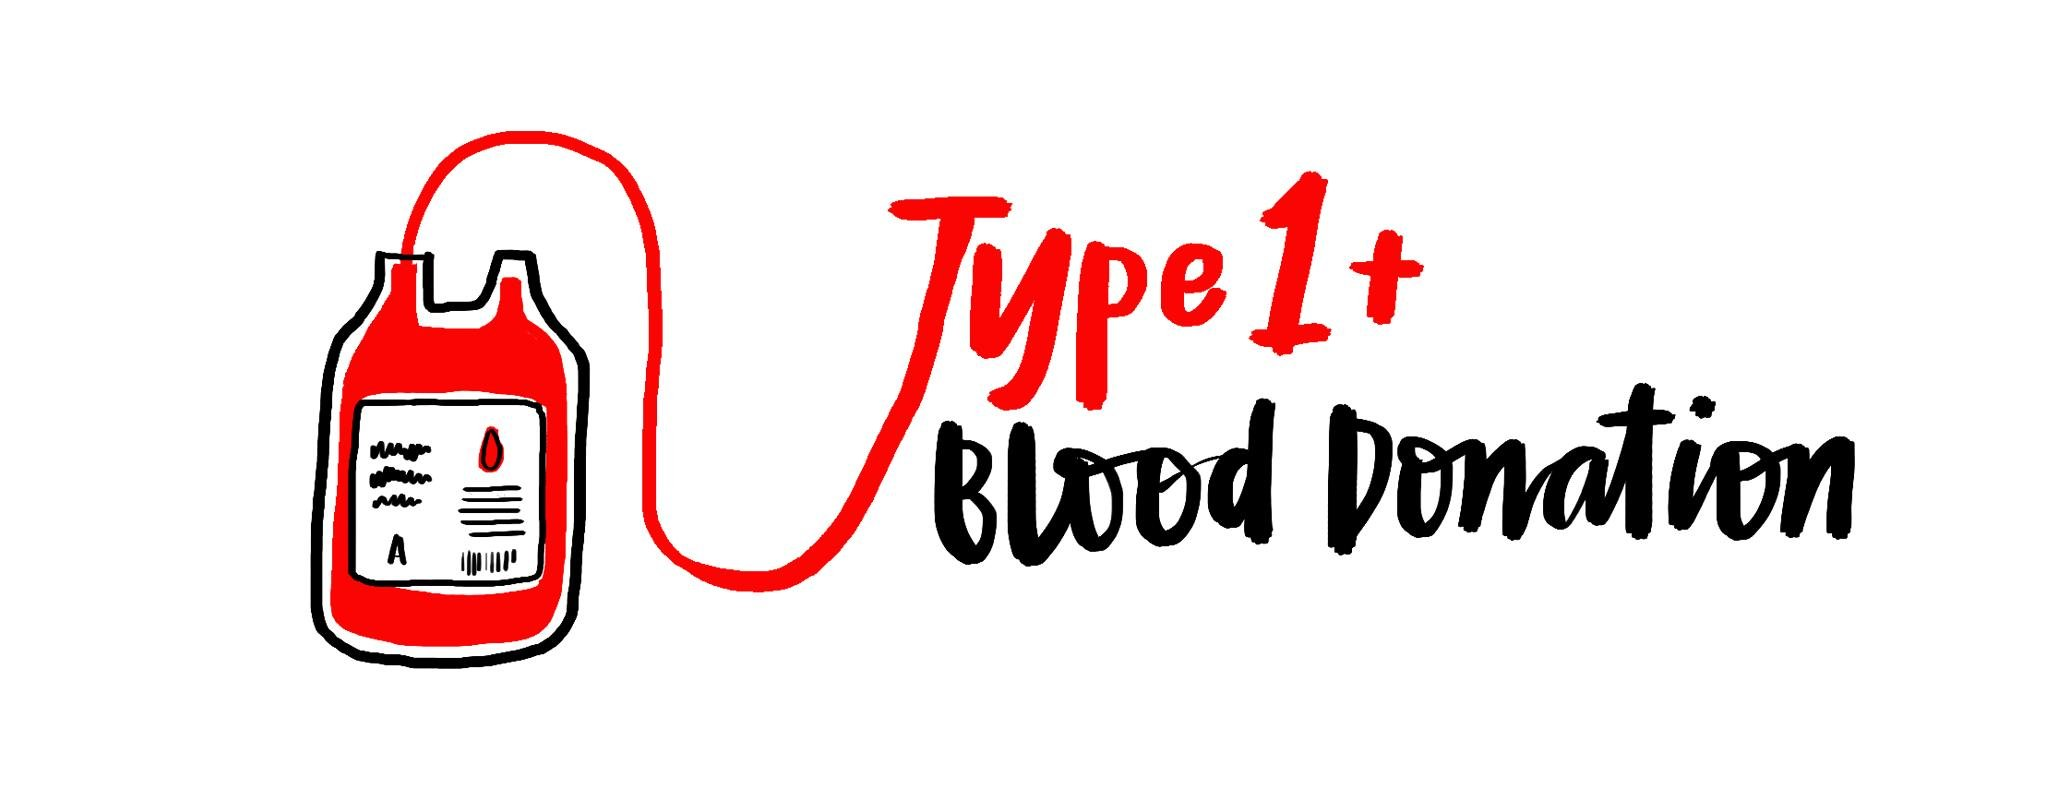 Donating Blood With Type 1 Diabetes